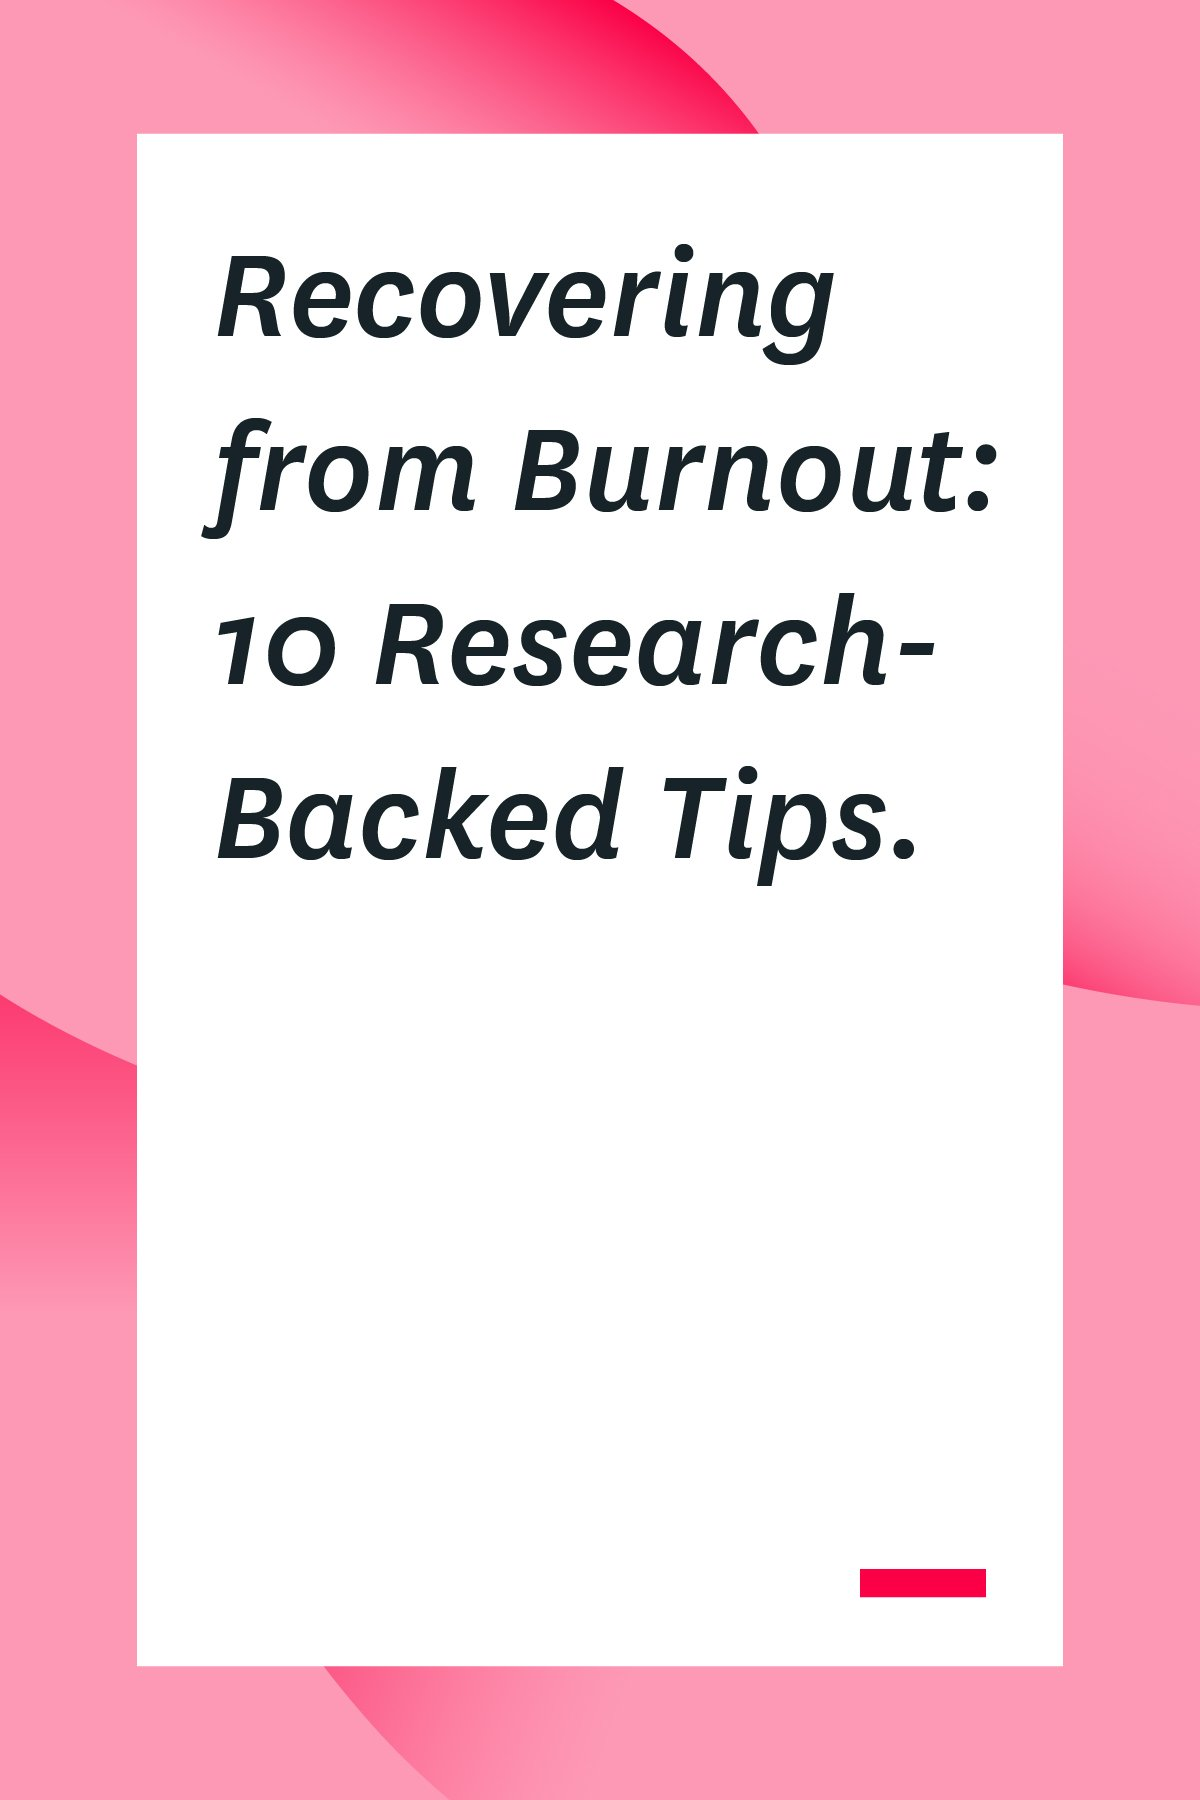 Work burnout can impact your career, your health, and your family life. If you're feeling burnt out at work, read these tips on how to recover so you can feel happy and productive again.